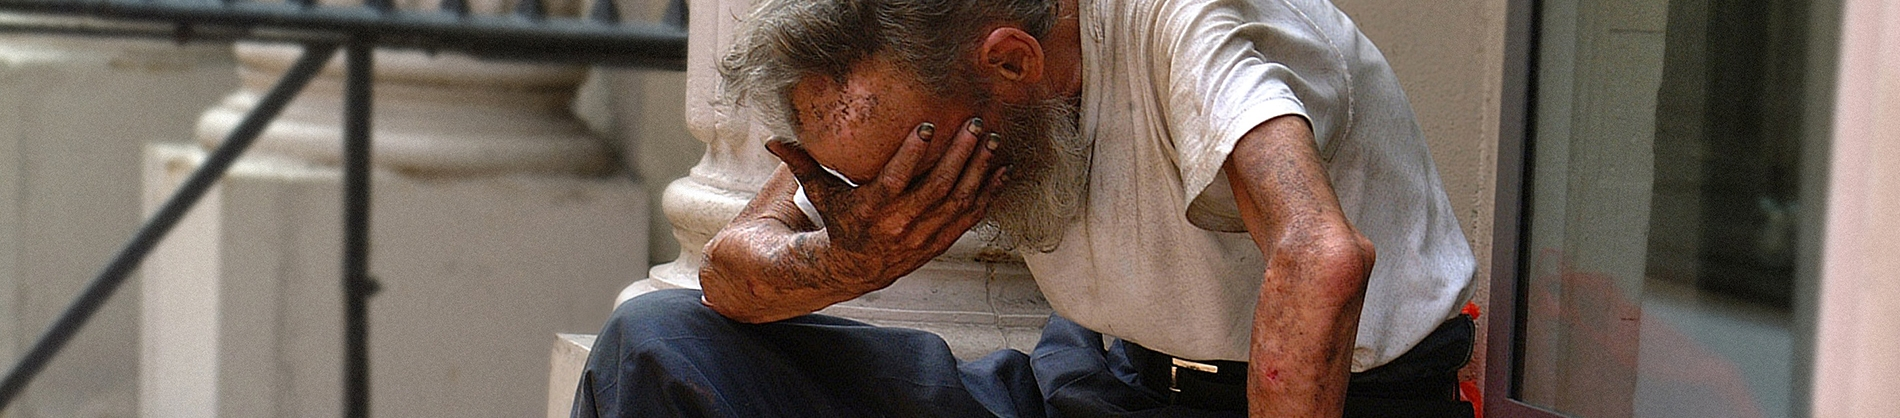 A older man sat on some steps with his head in his hand covered in dirt